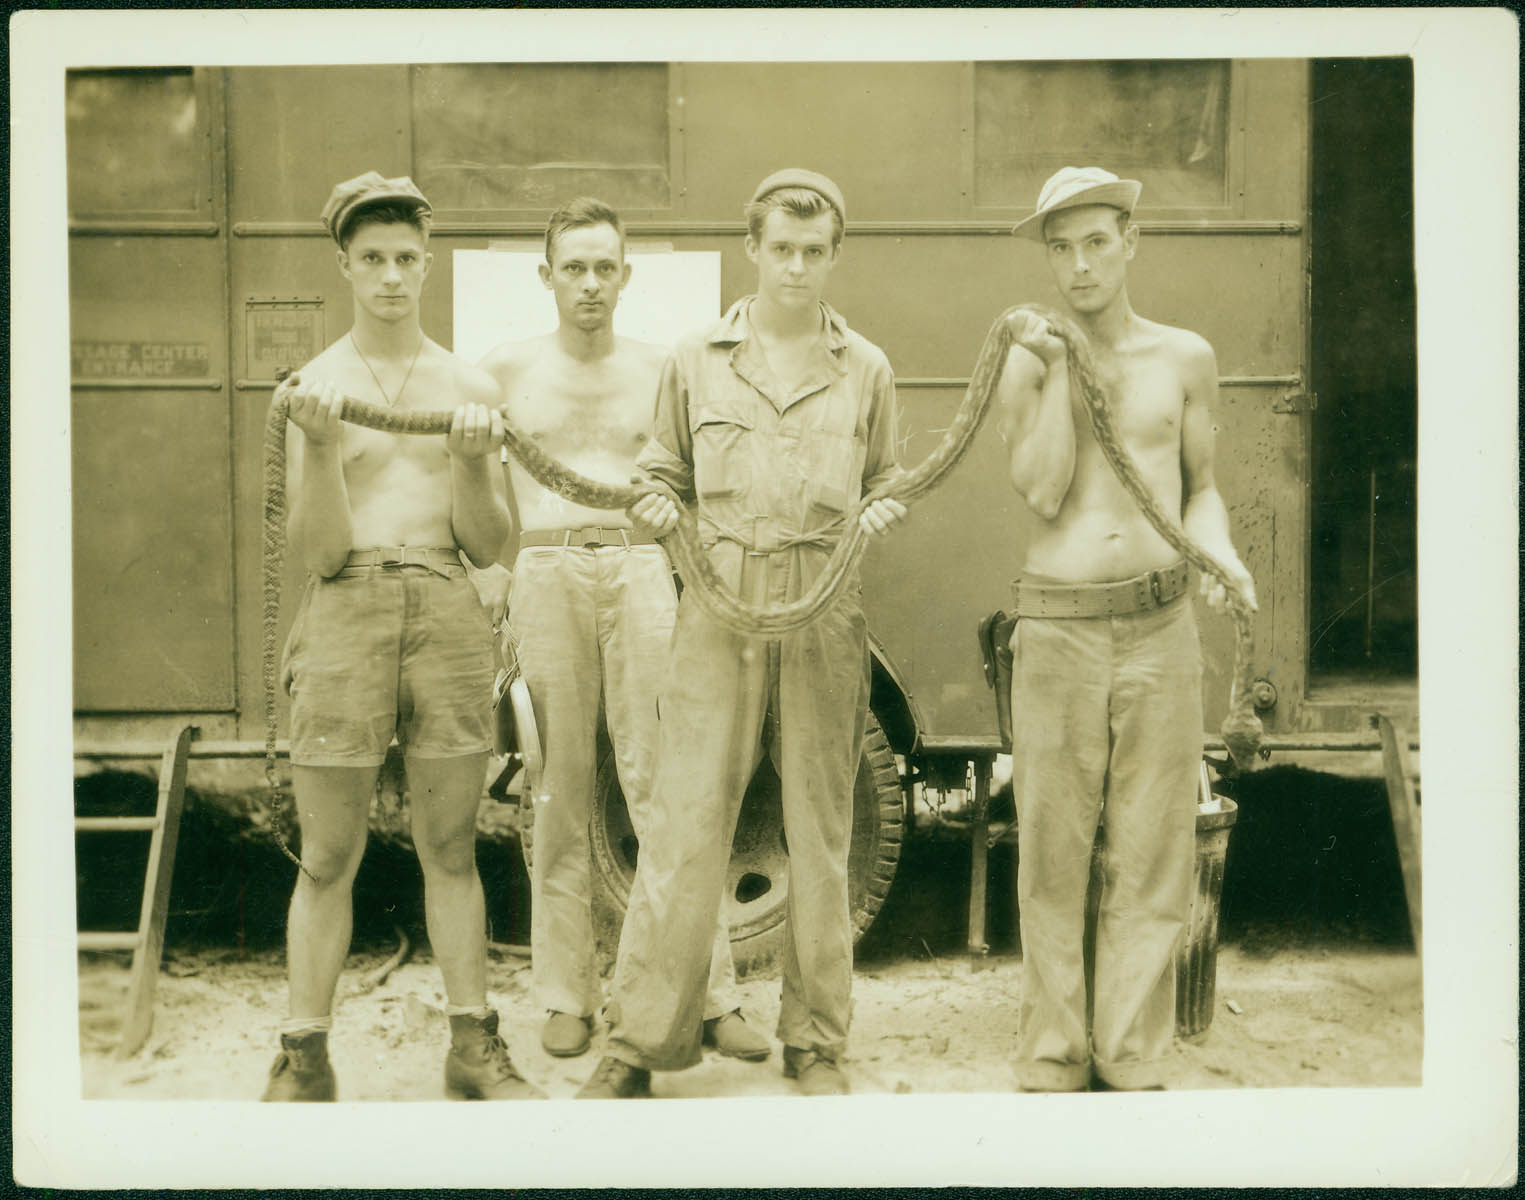 Soldiers with snake in New Guinea [RG5841-9-9]